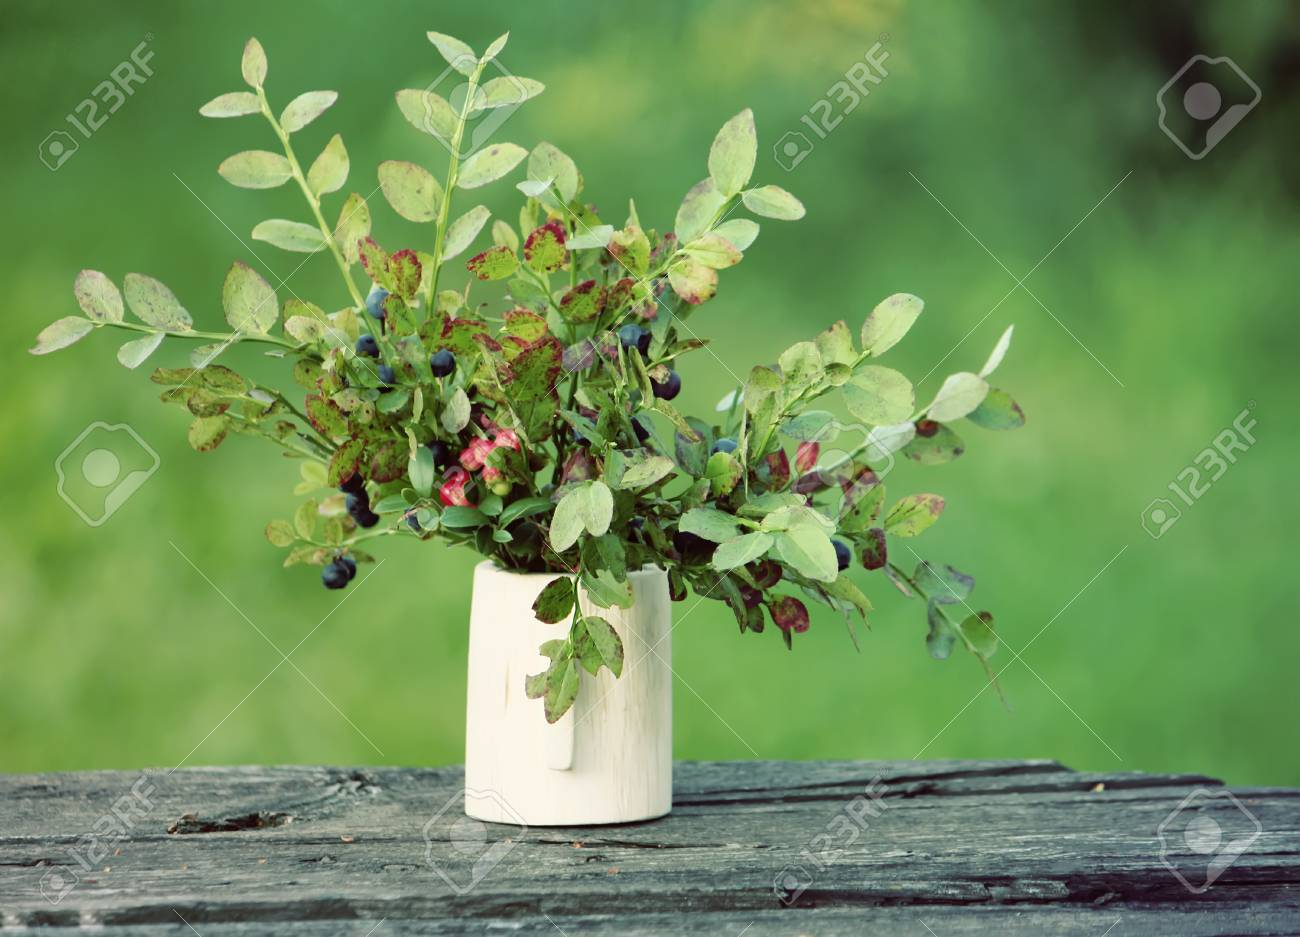 Bouquet Of Blueberry In A Wooden Vase Outdoors Stock Photo Picture And Royalty Free Image Image 62573682